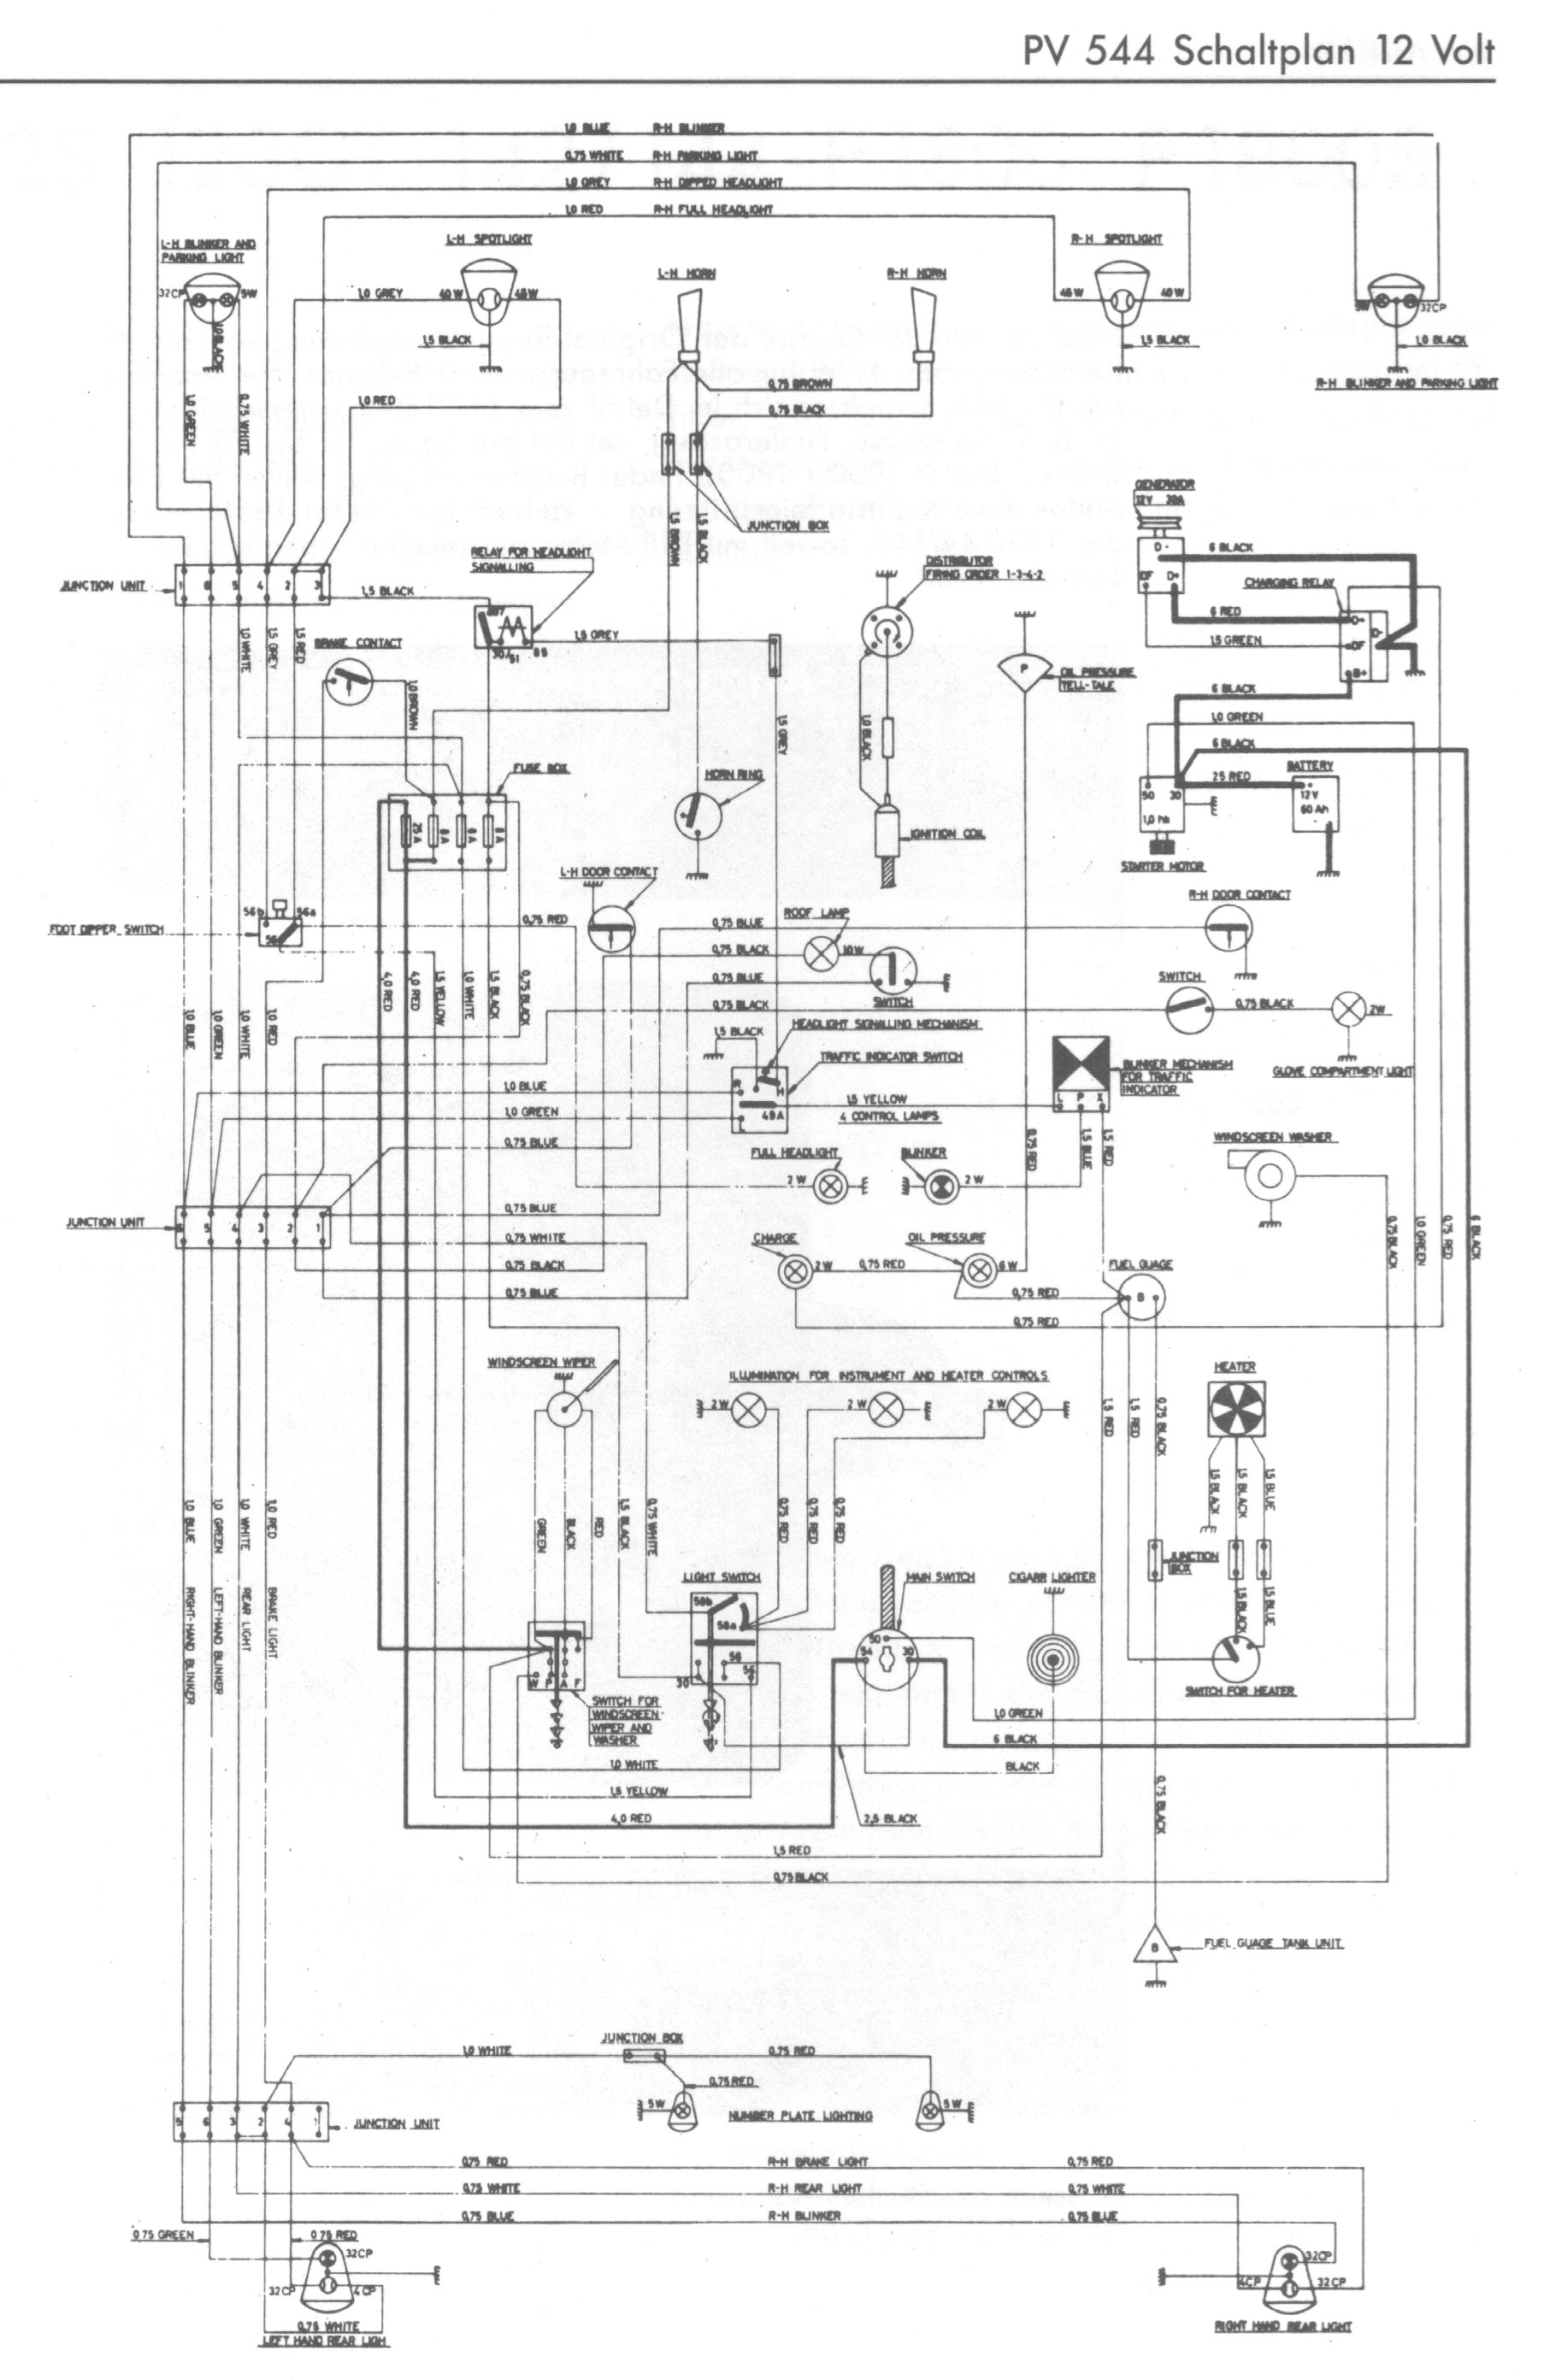 1993 Volvo 240 Radio Wiring Diagram : Volvo radio wiring diagram html